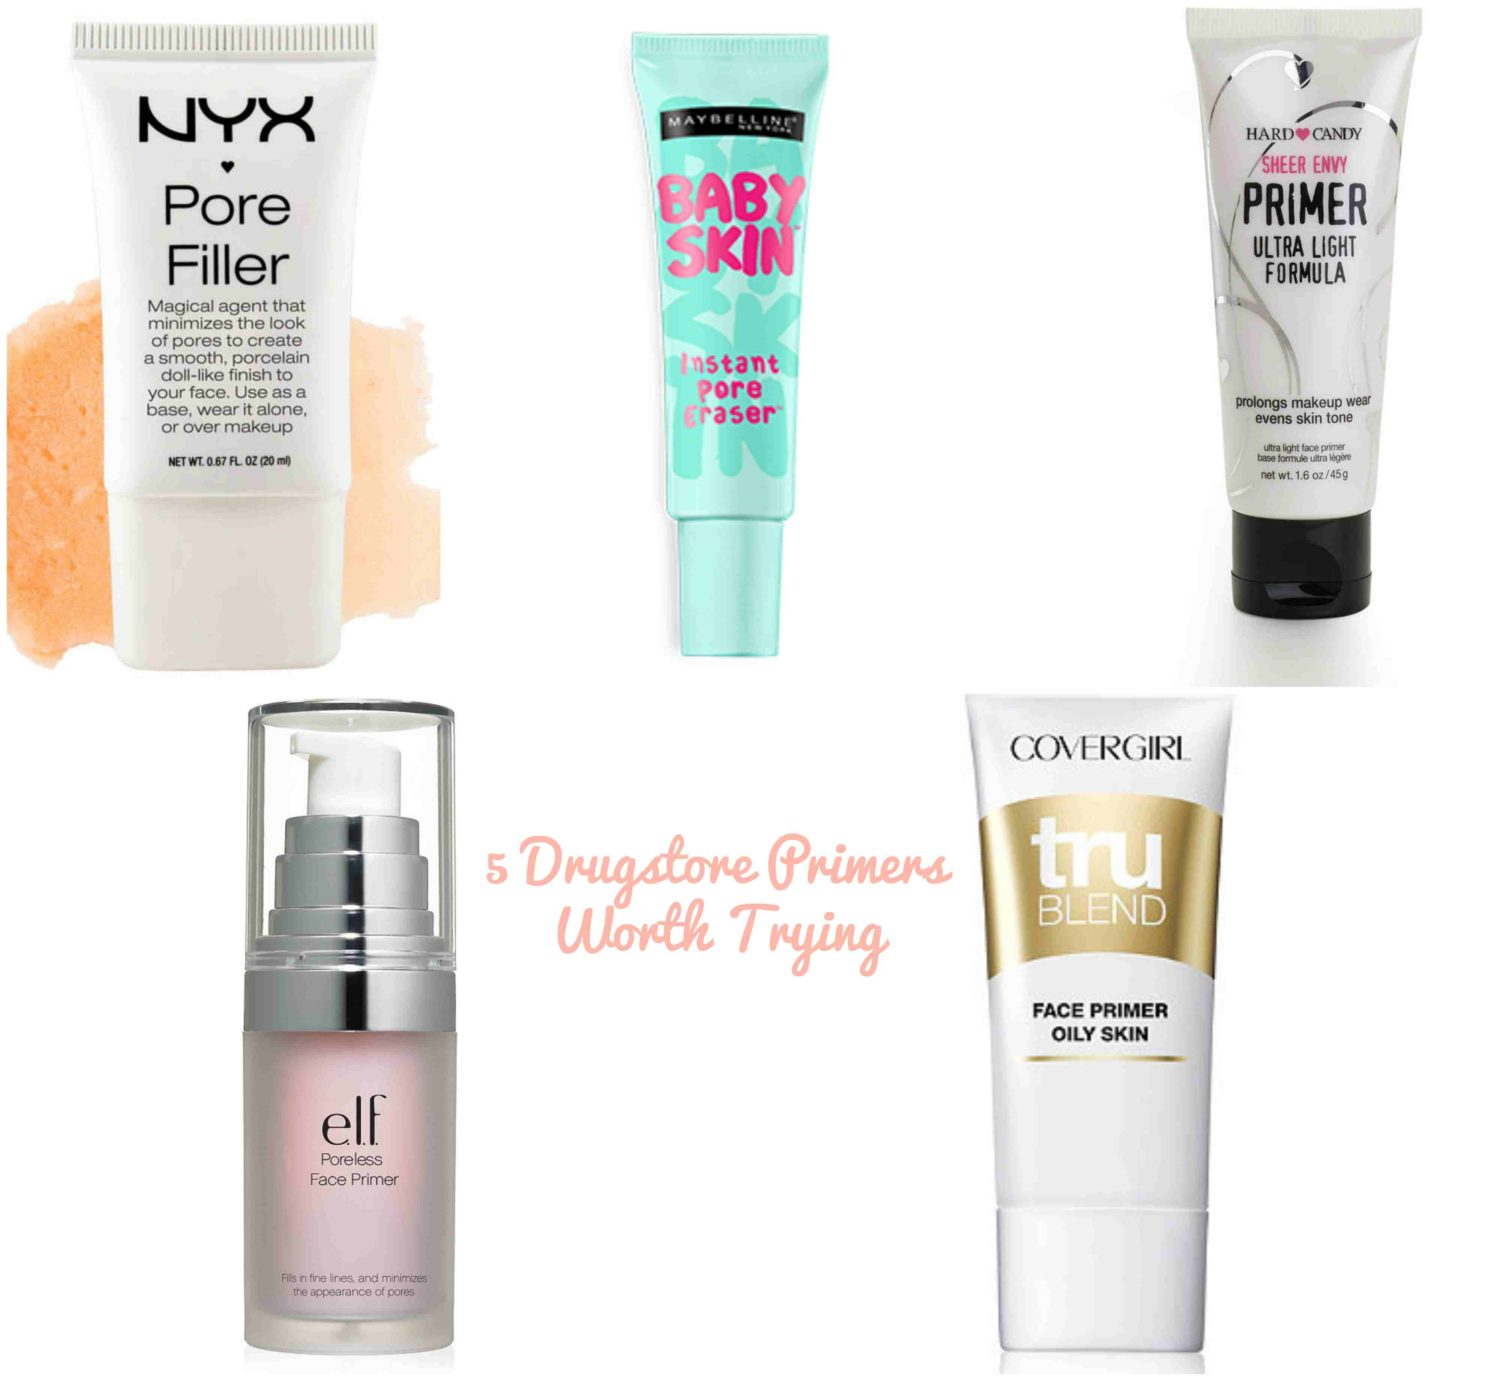 5 Drugstore Primers Worth Trying